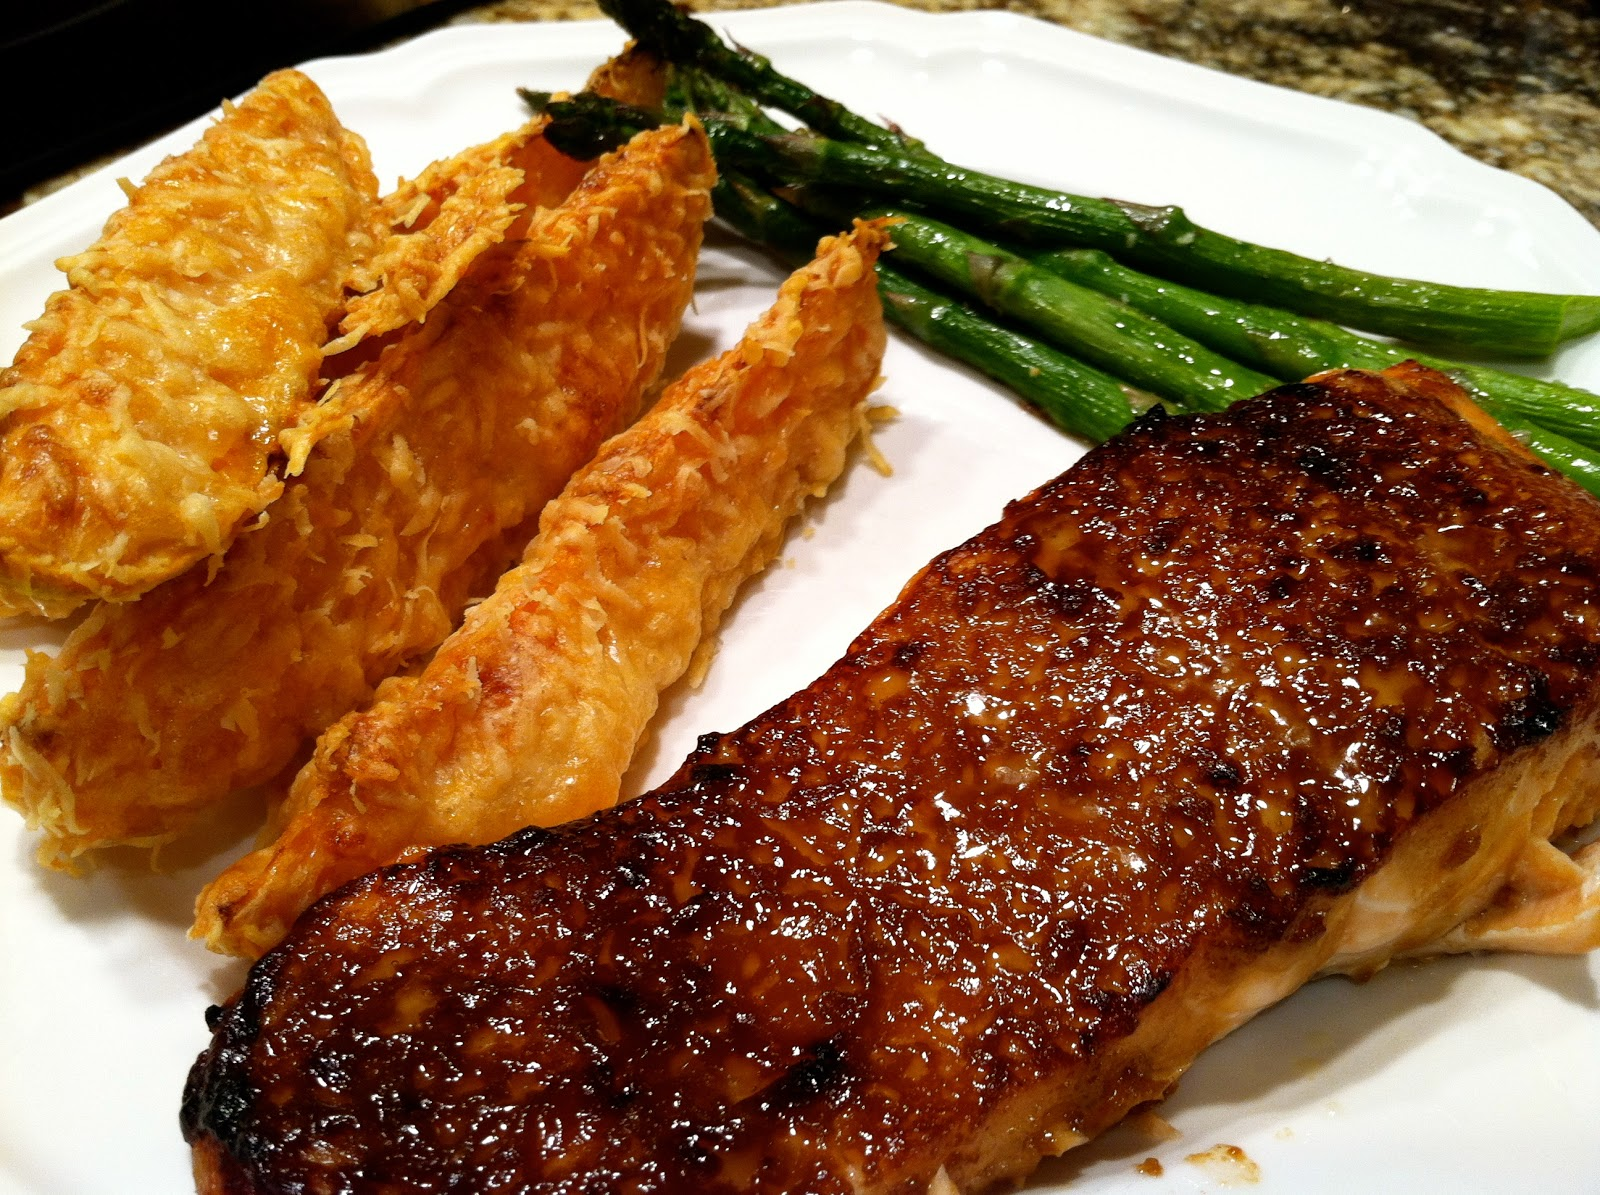 ... From Alice's Kitchen: Salmon with Brown Sugar and Mustard Glaze